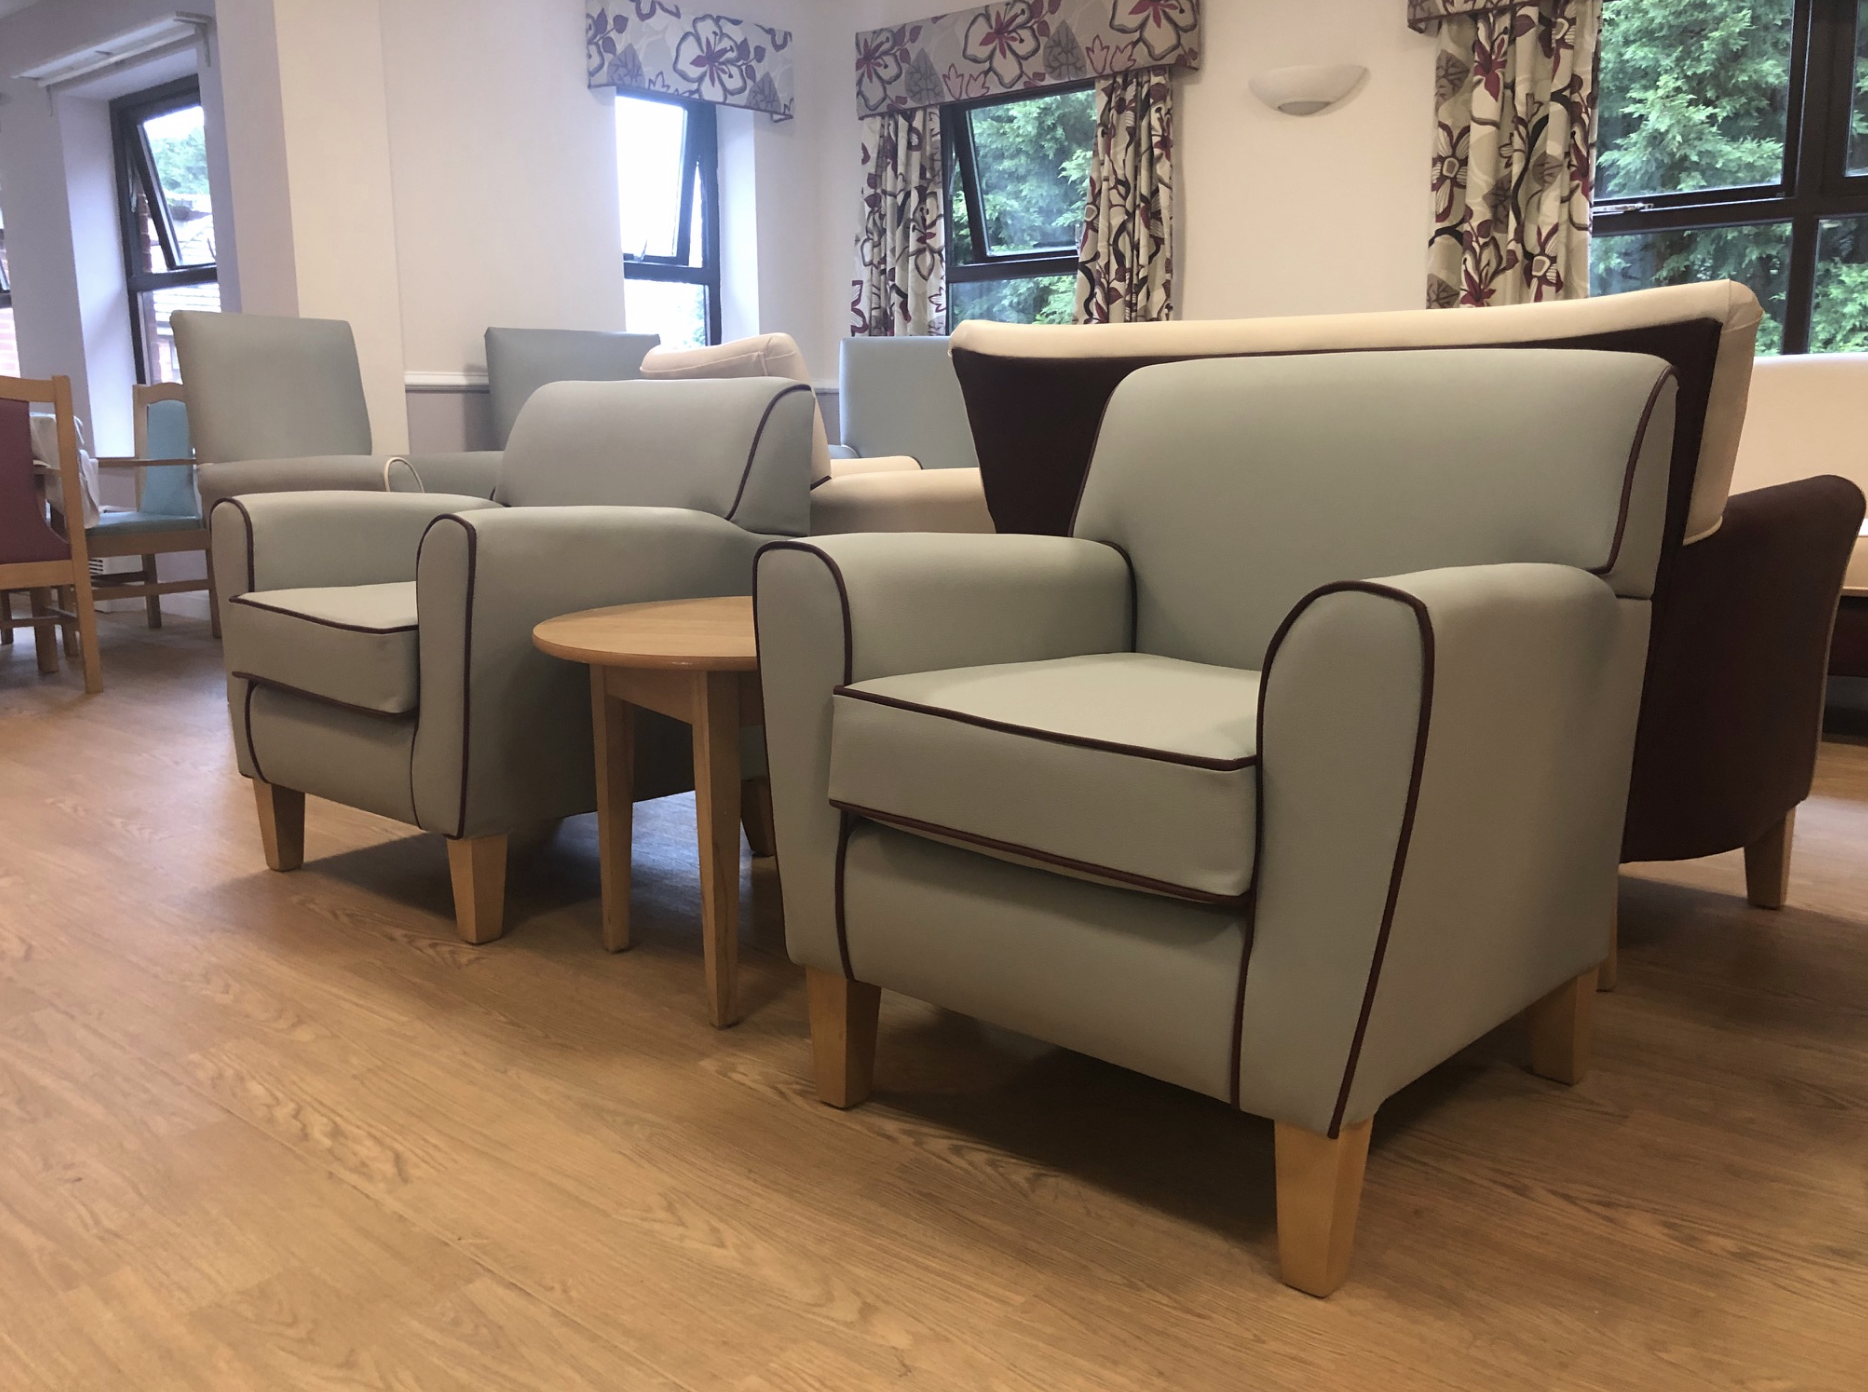 Healthcare Lounge Installations